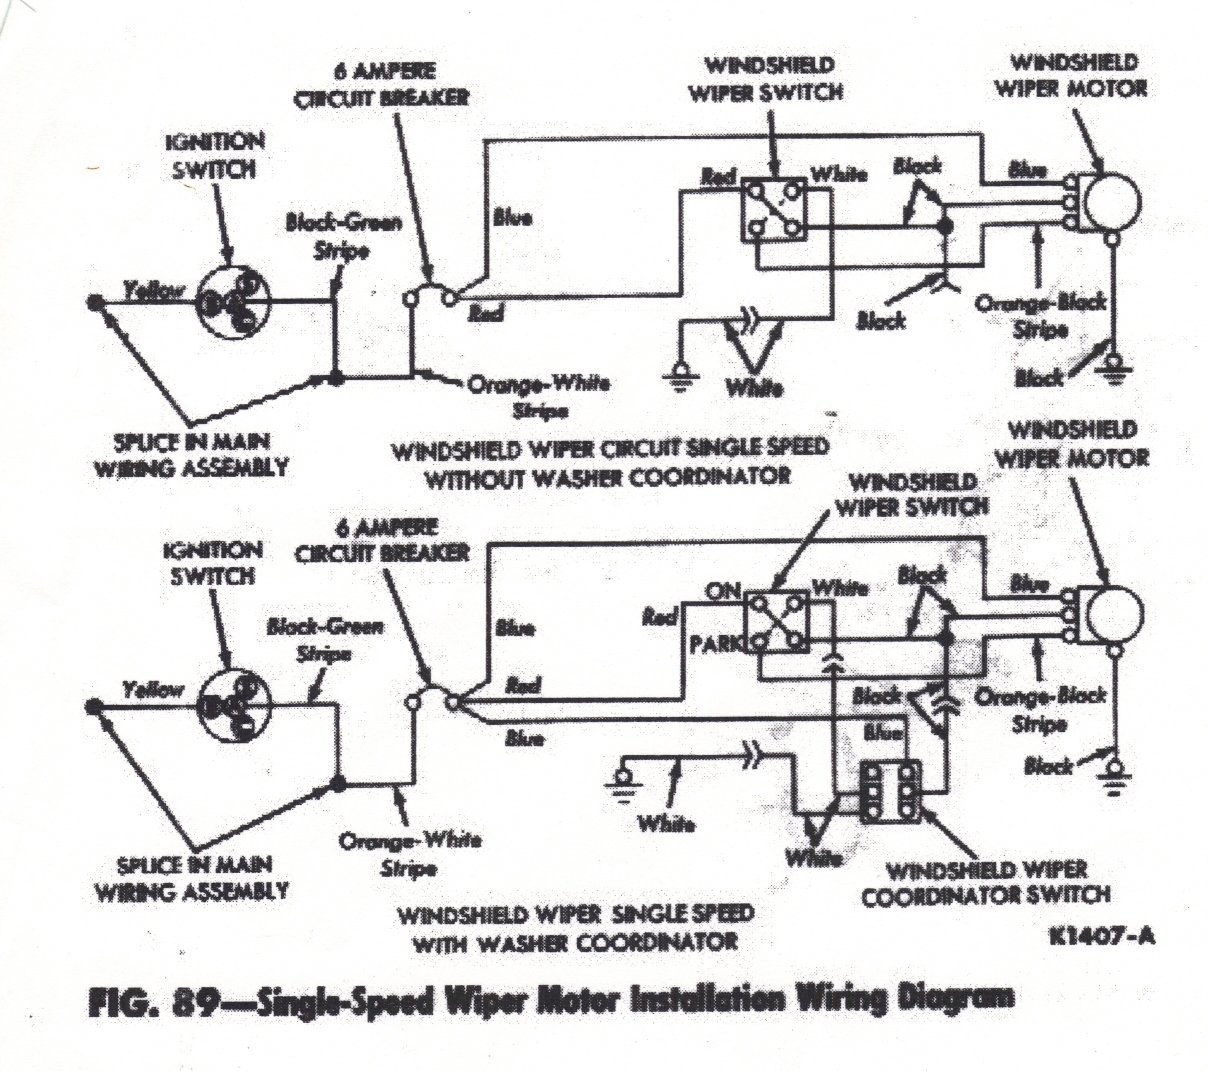 hight resolution of wipers drawing a falcon diagrams wipers drawing a 99 wrangler wiper motor wiring